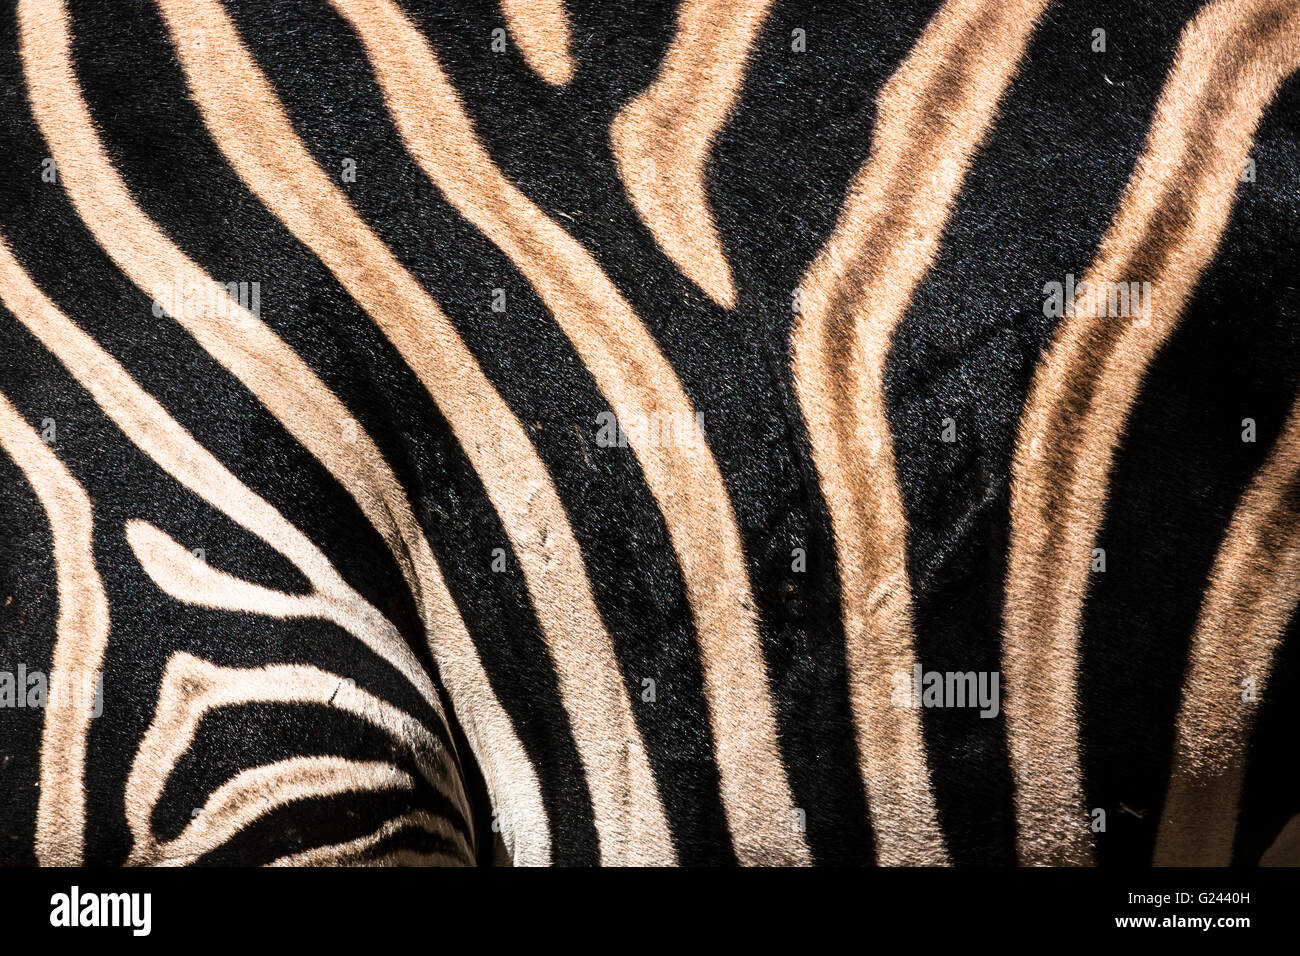 Detail Of Zebra Equus Quagga Chapmani Stripes. - Stock Image